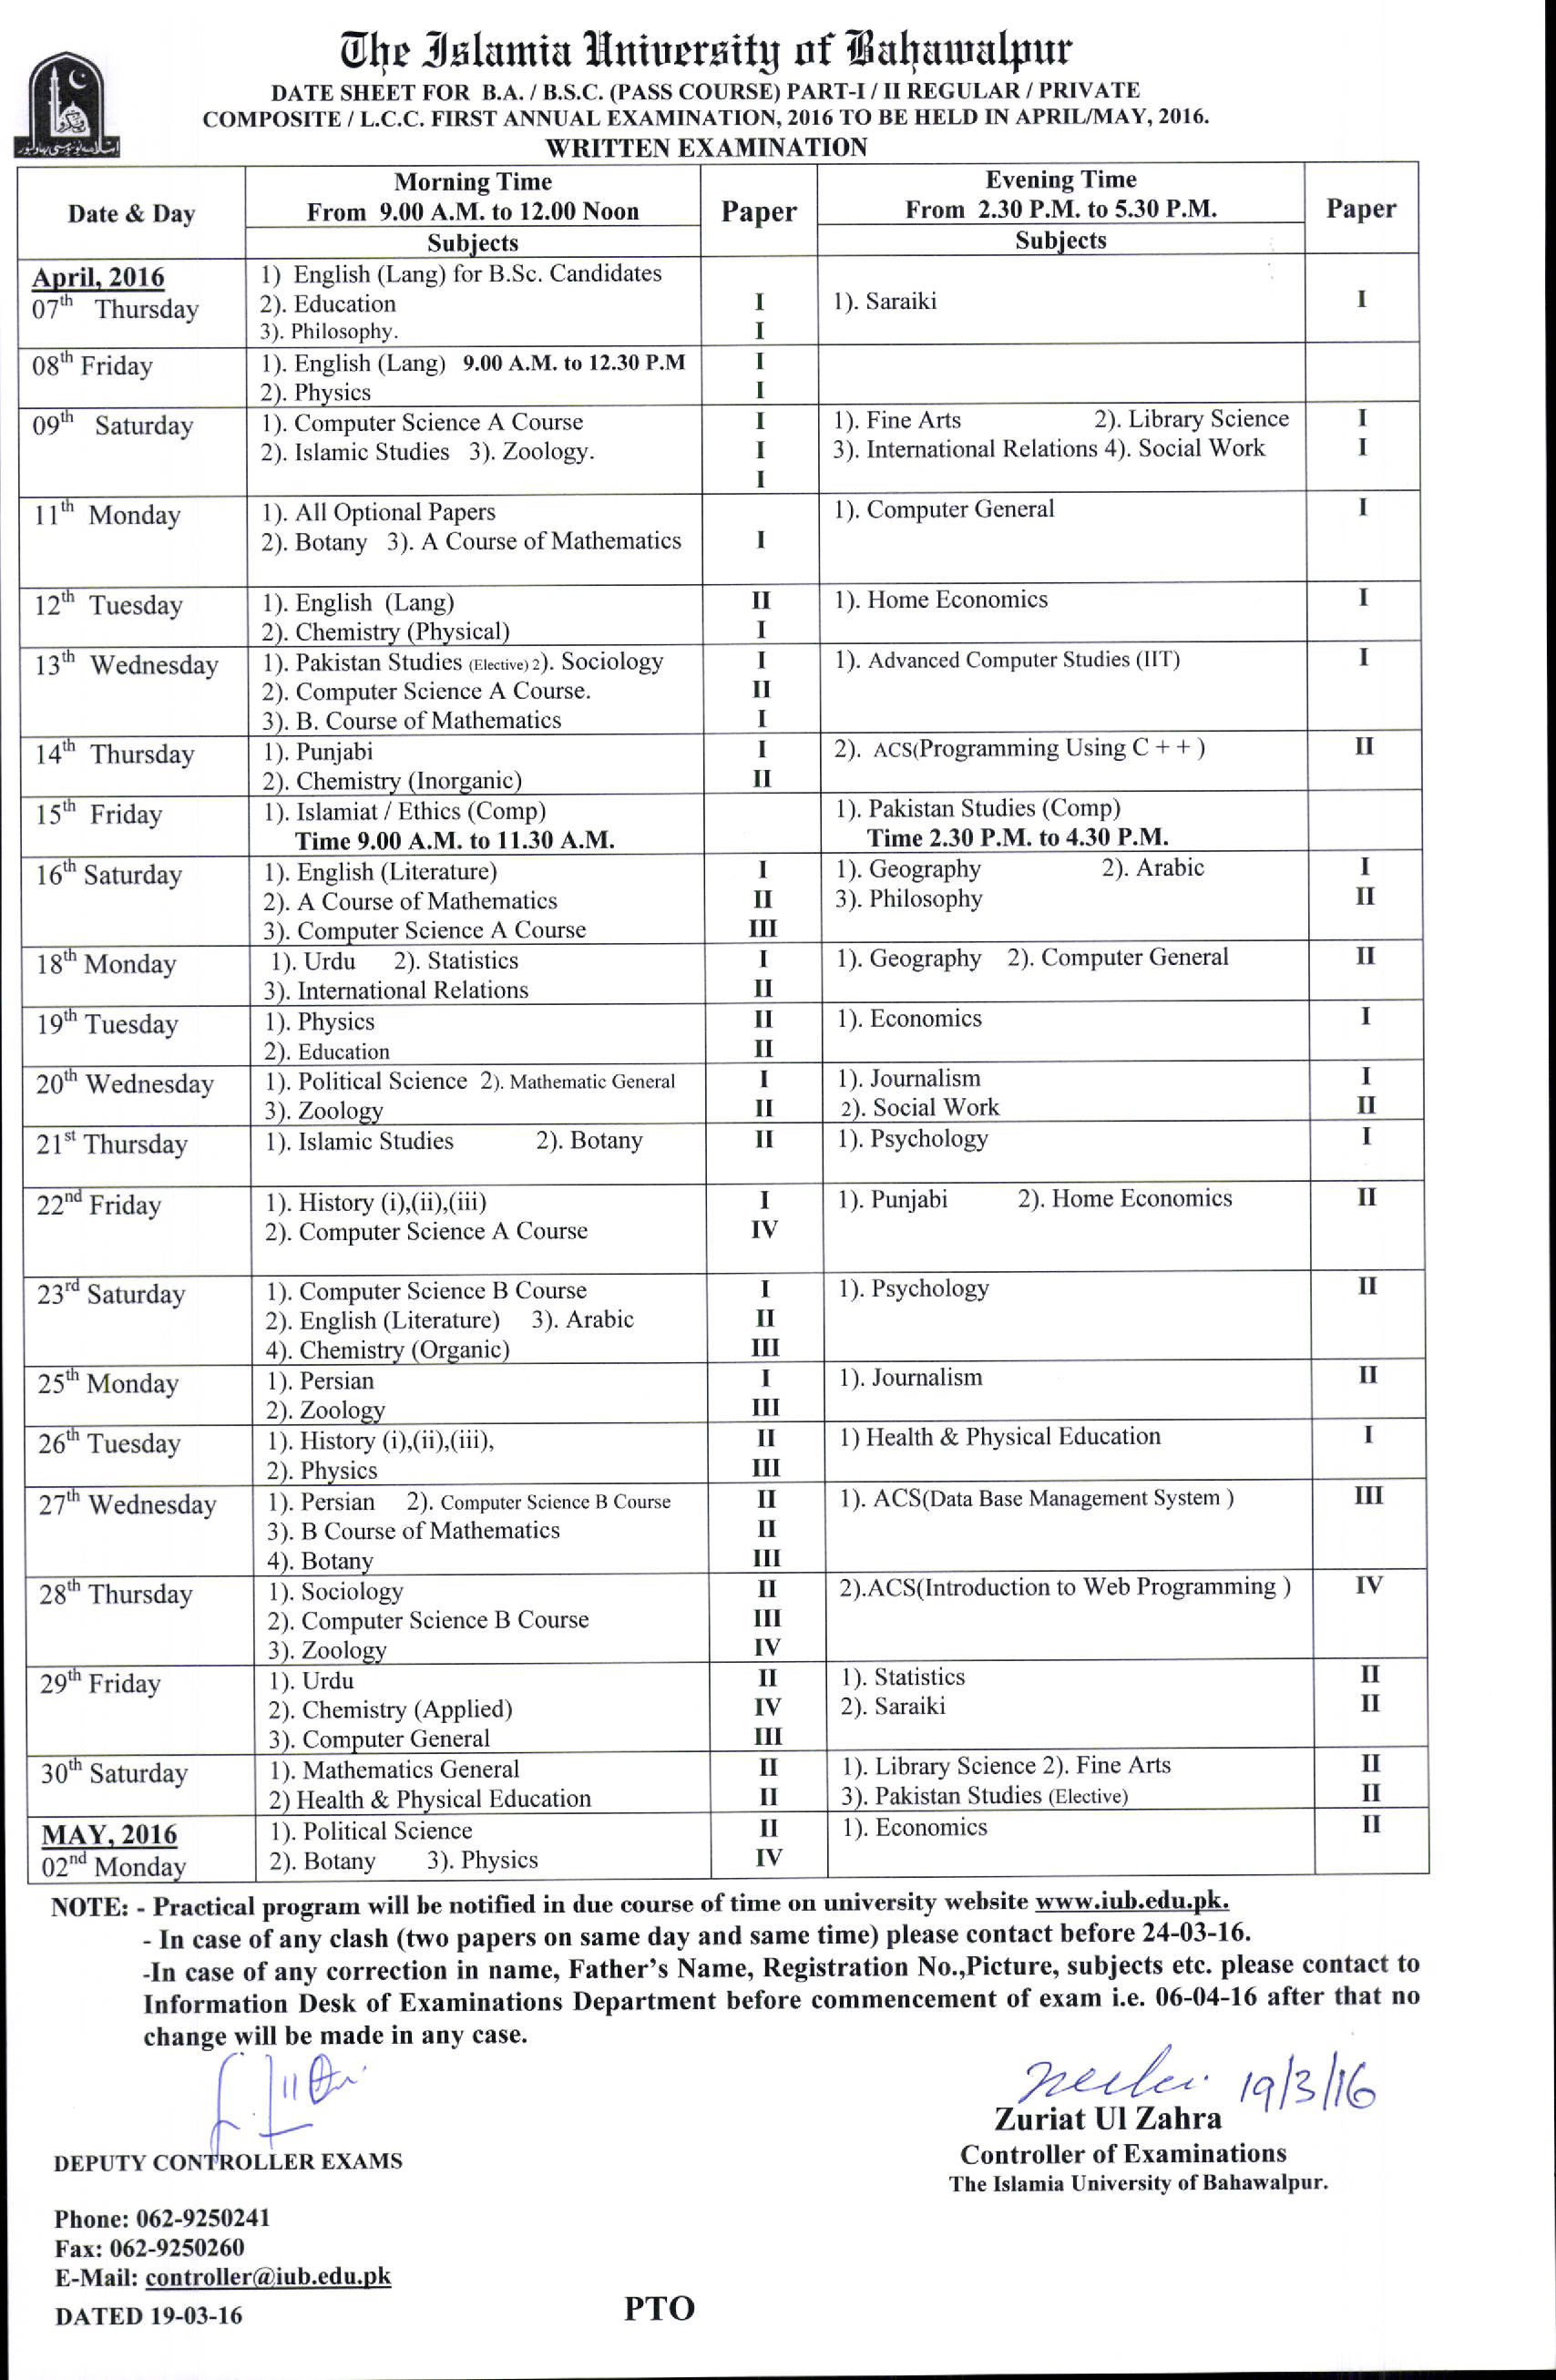 Islamia University of Bahawalpur IUB B.A, BSC Date Sheet 2016